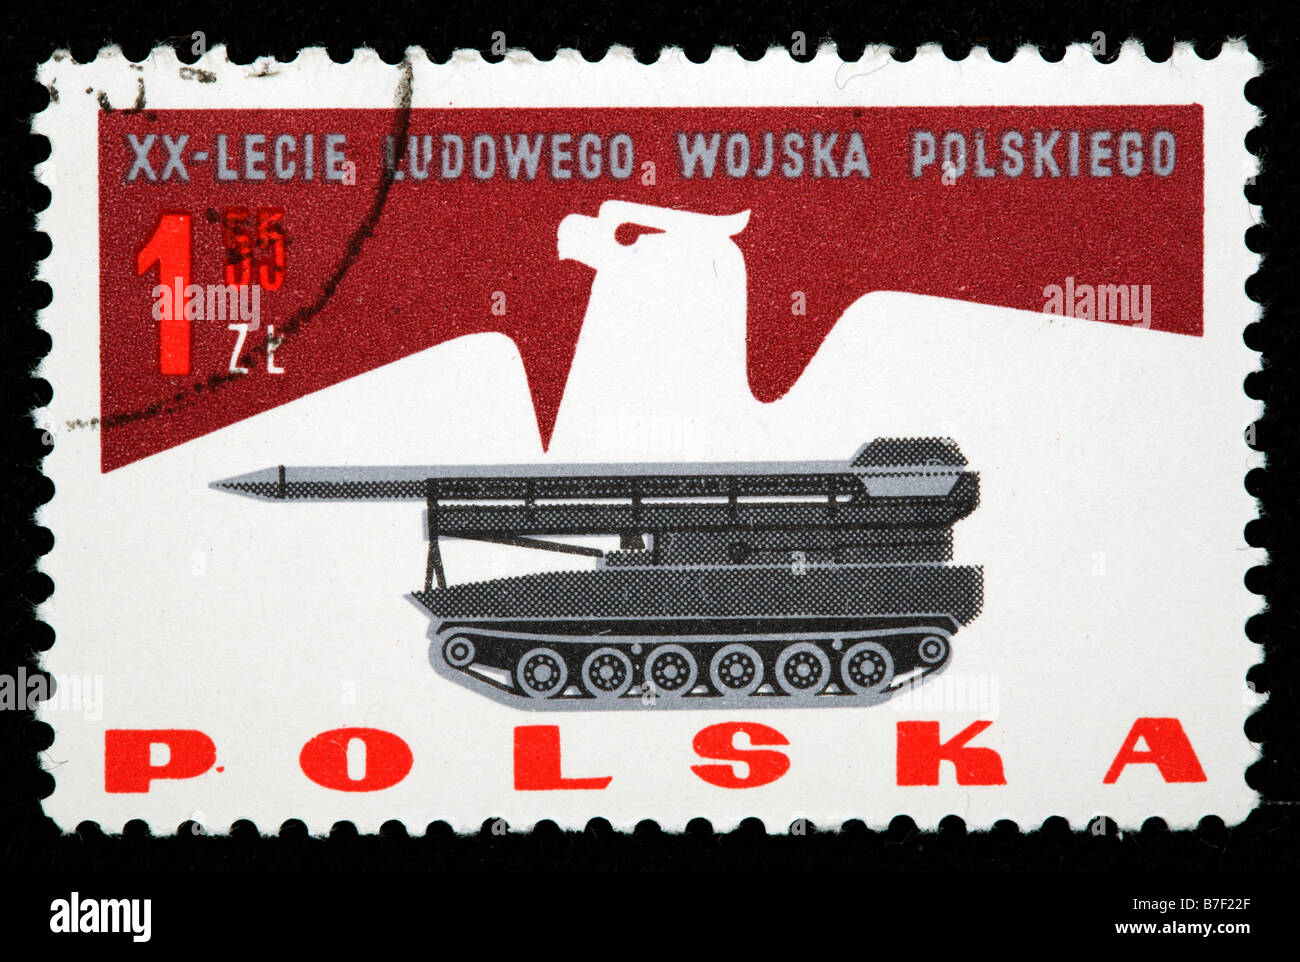 Rocket launcher, 20 anniversary of army of Polish people republic, 1960s, postage stamp, Poland - Stock Image